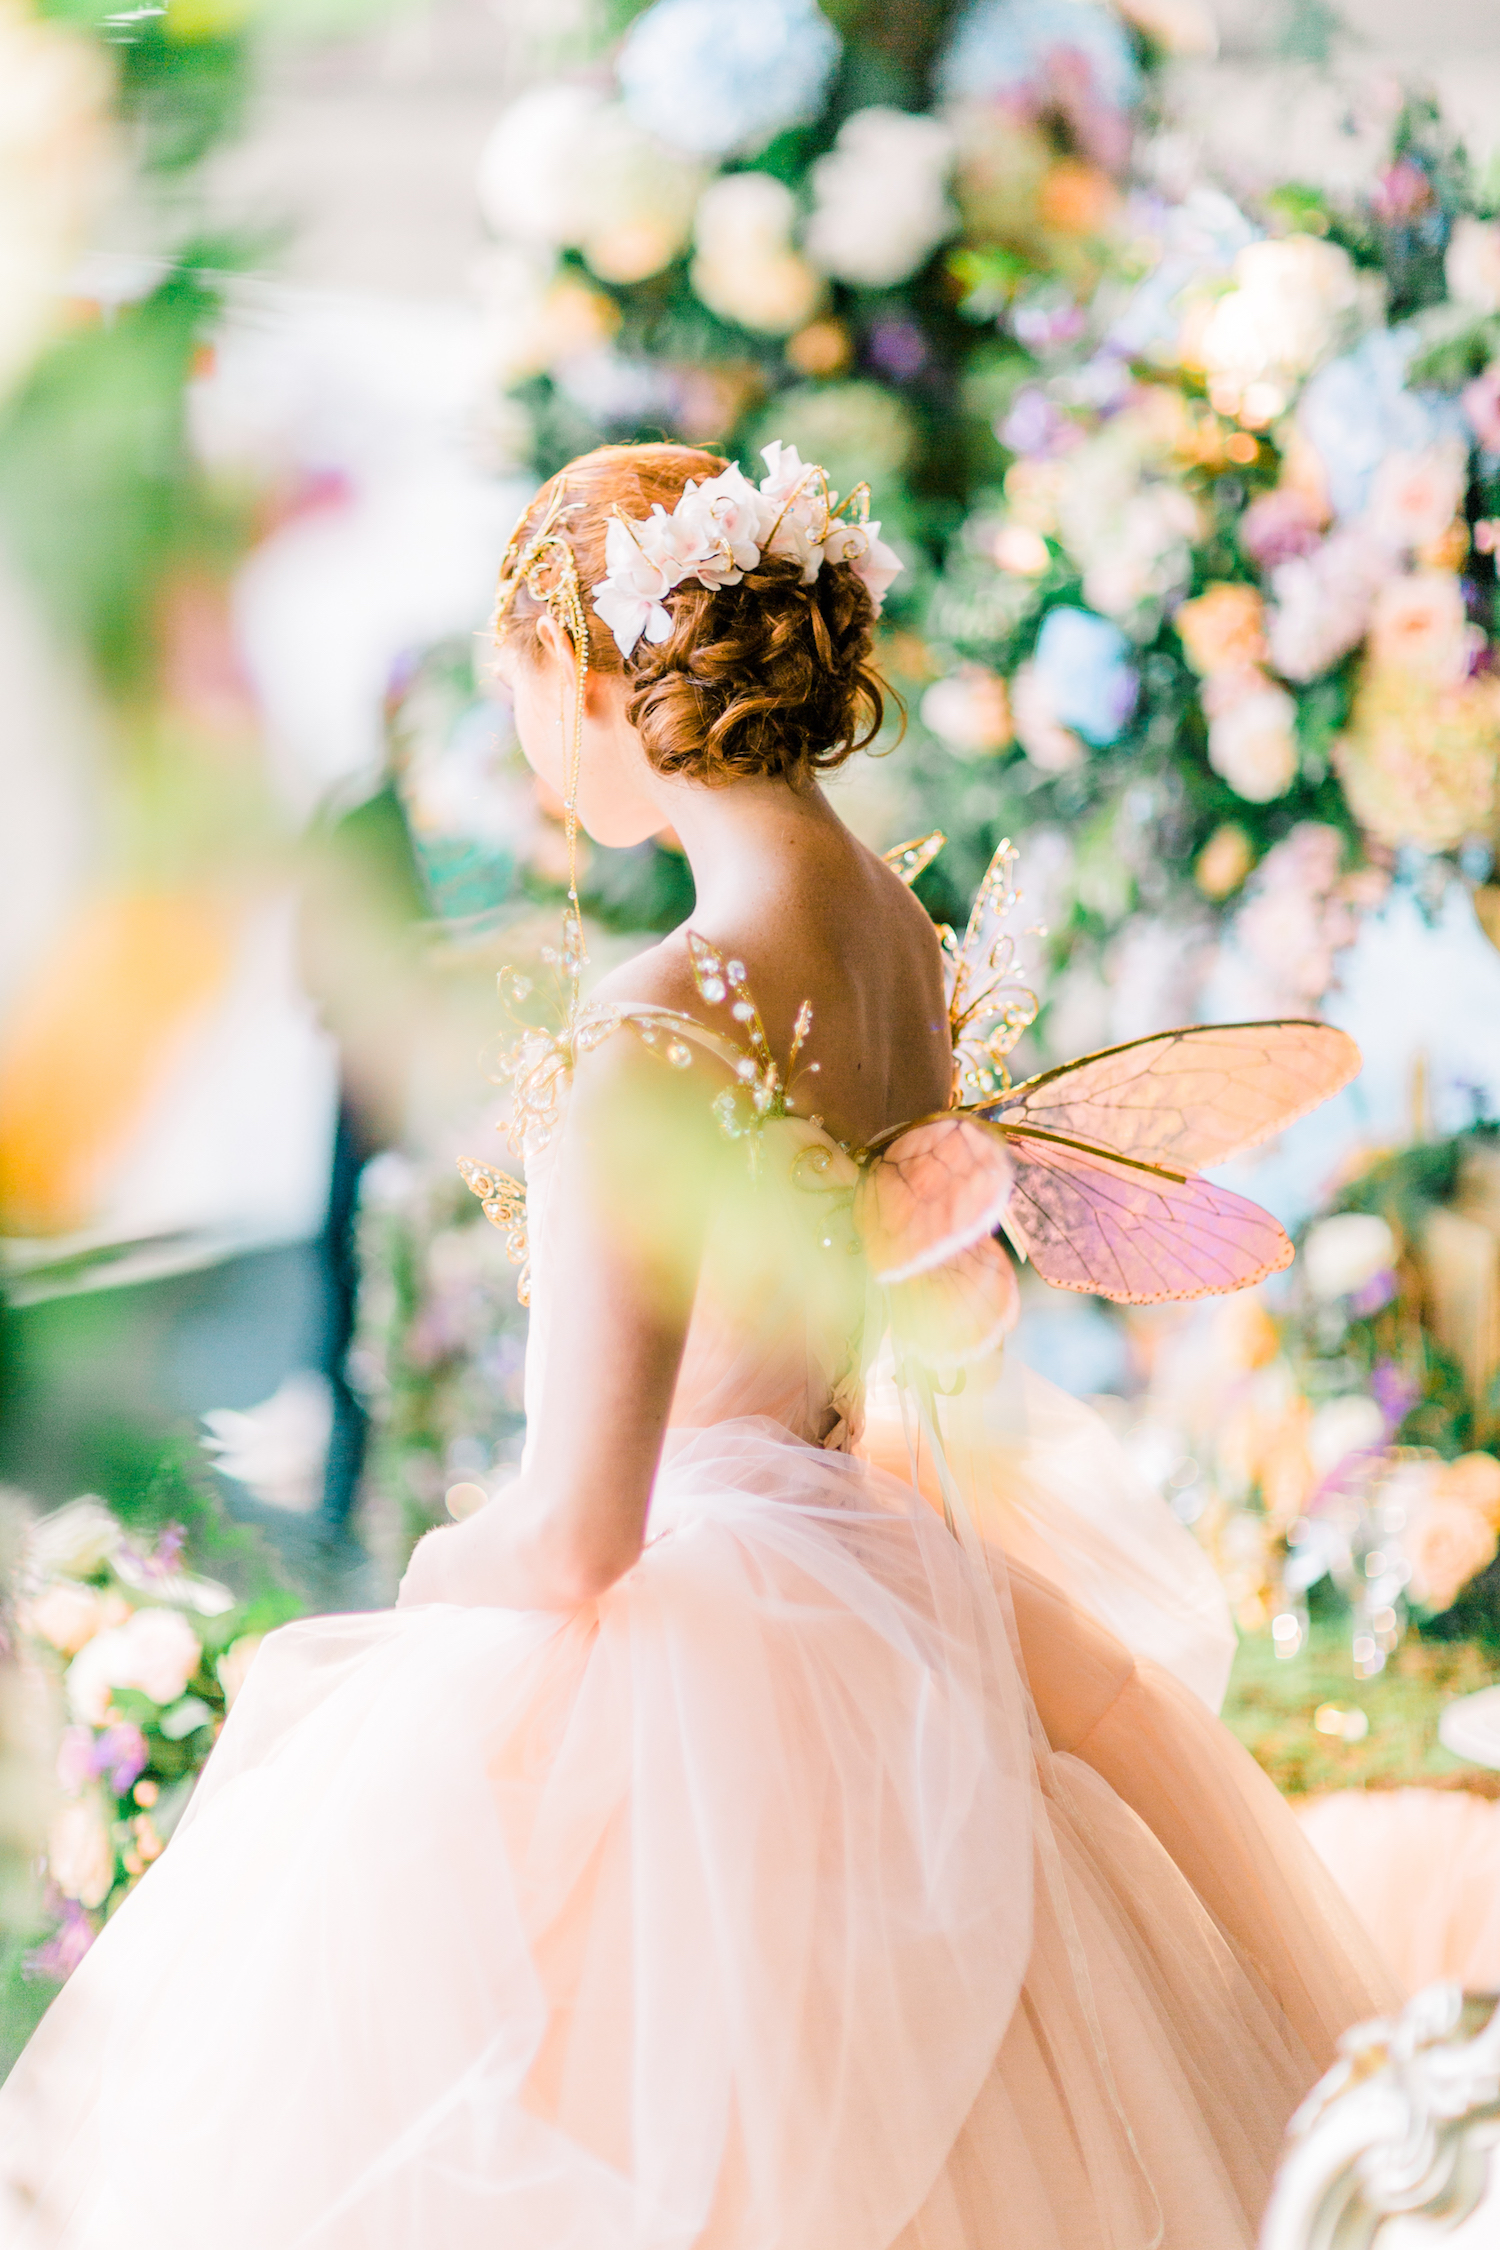 Fairy Enchanted Garden Themed Wedding Inspiration | Amie Bone Flowers | London Weddings | Watercolor Floral Themed Weddings